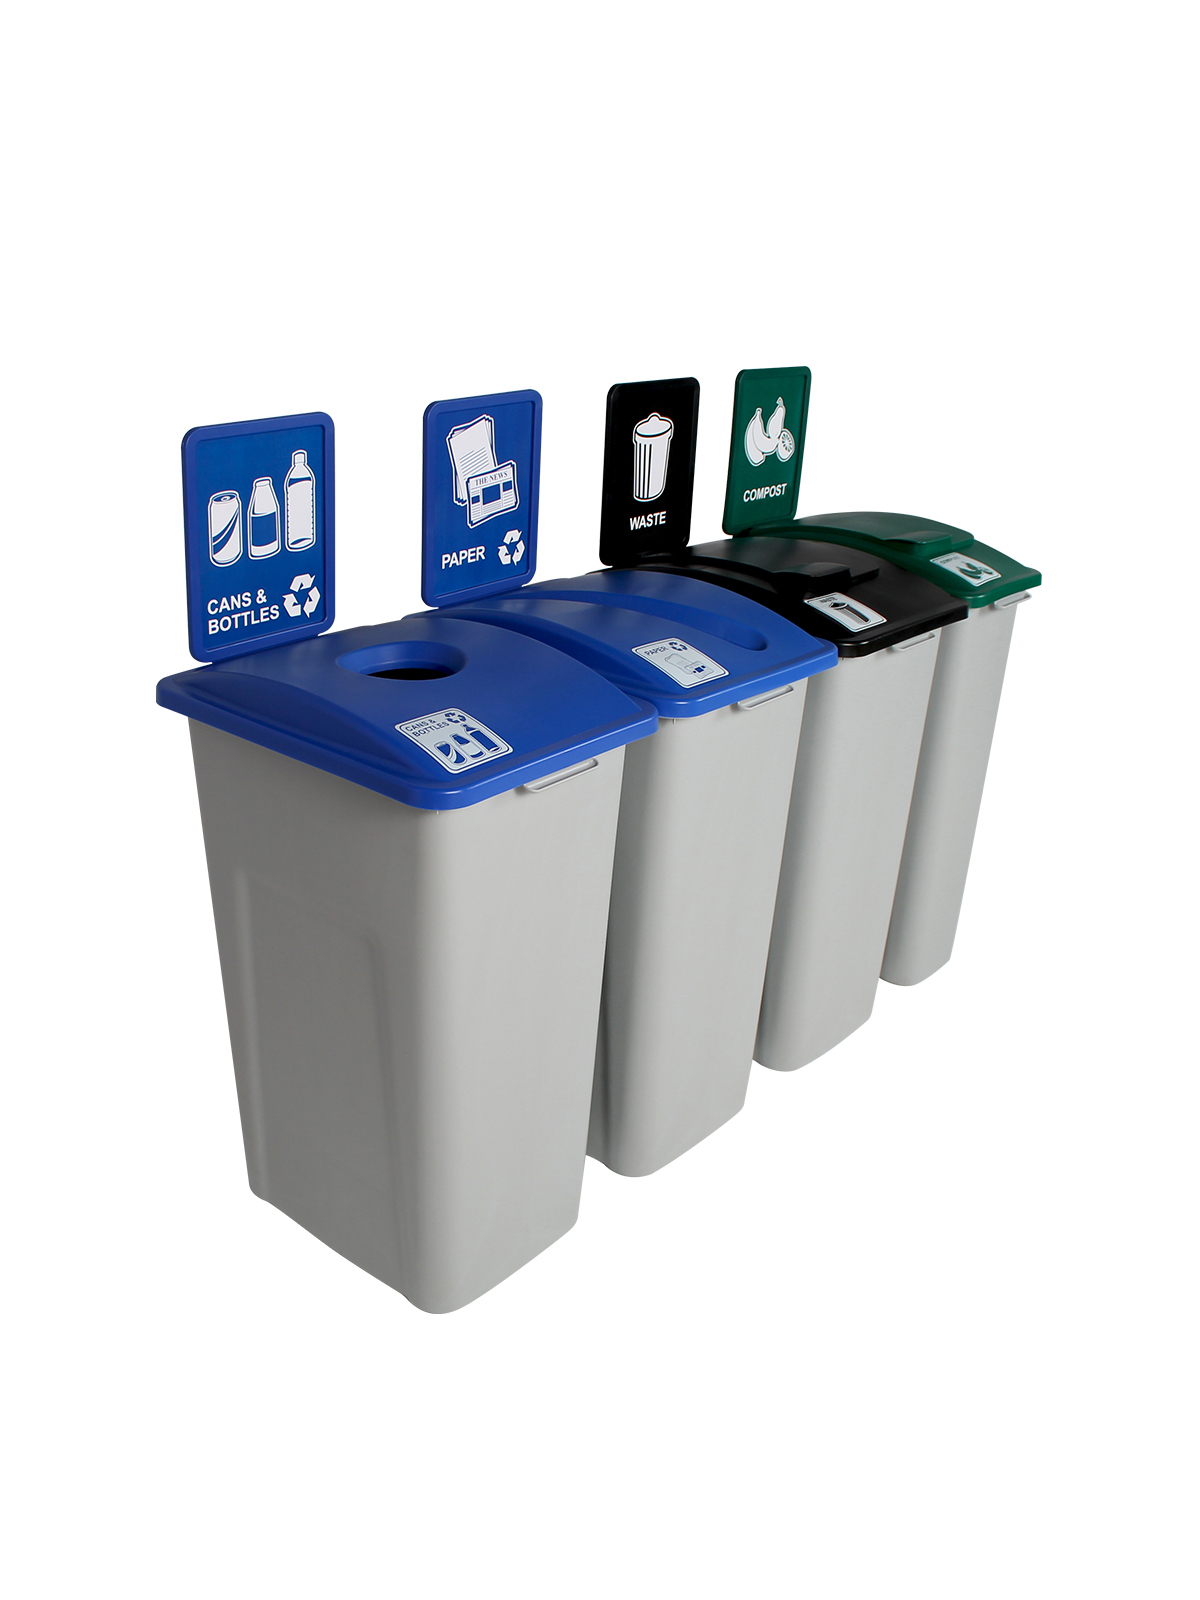 WASTE WATCHER XL - Quad - Cans & Bottles-Paper-Compost-Waste - Circle-Slot-Solid Lift-Solid Lift - Grey-Blue-Blue-Green-Black